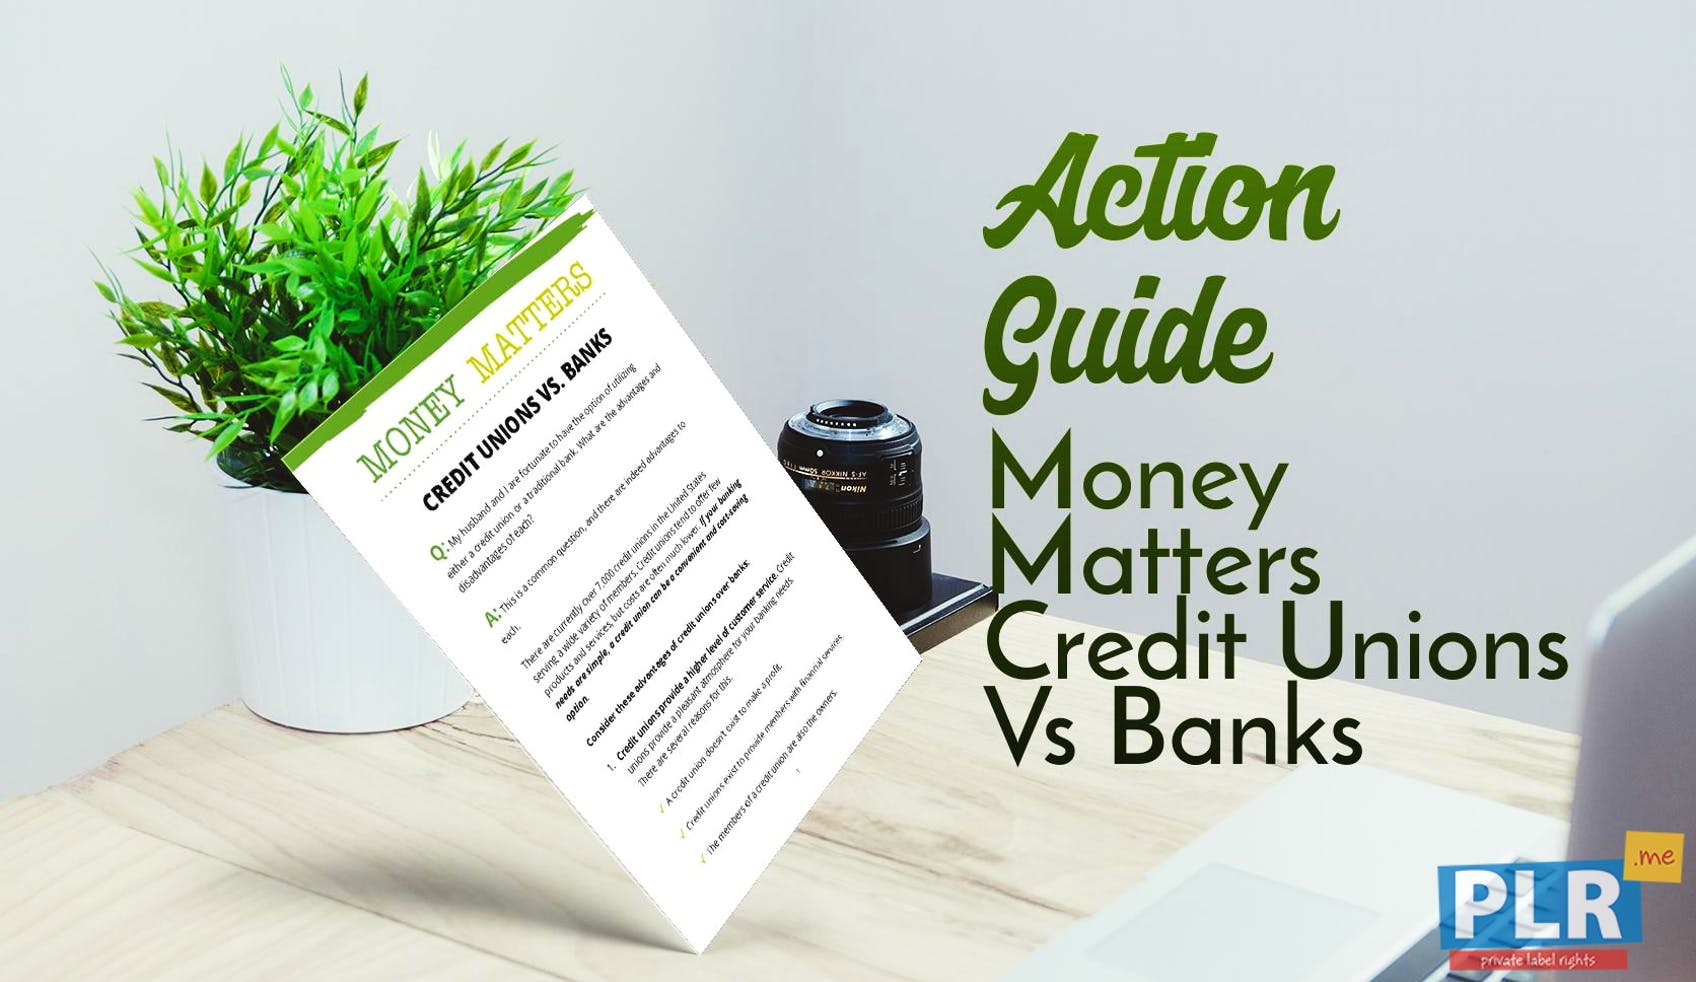 Money Matters Credit Unions Vs Banks